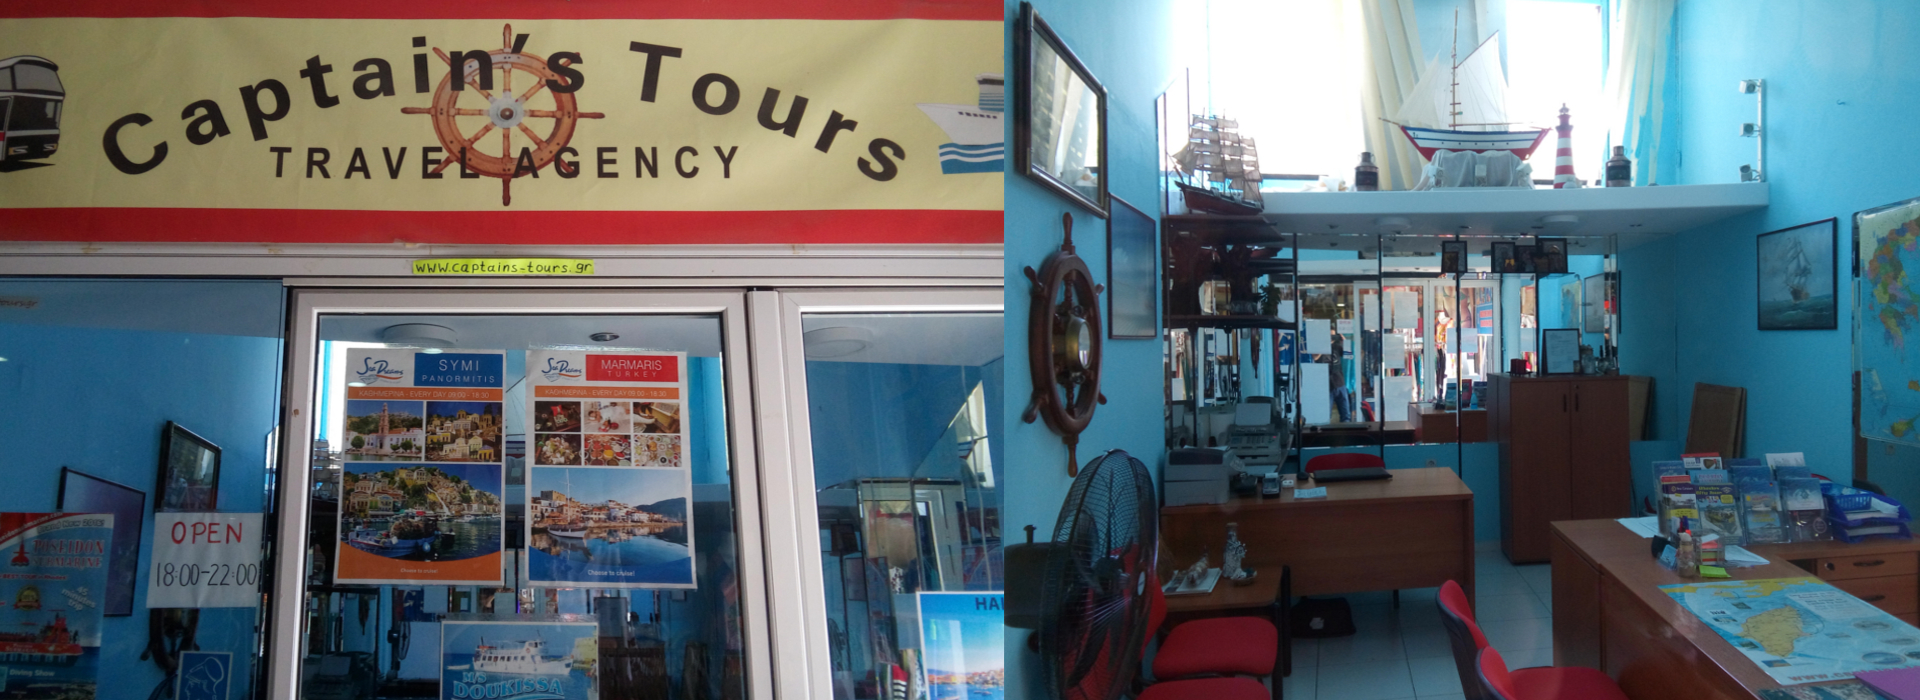 Captain's Tours Travel Agency | About our company